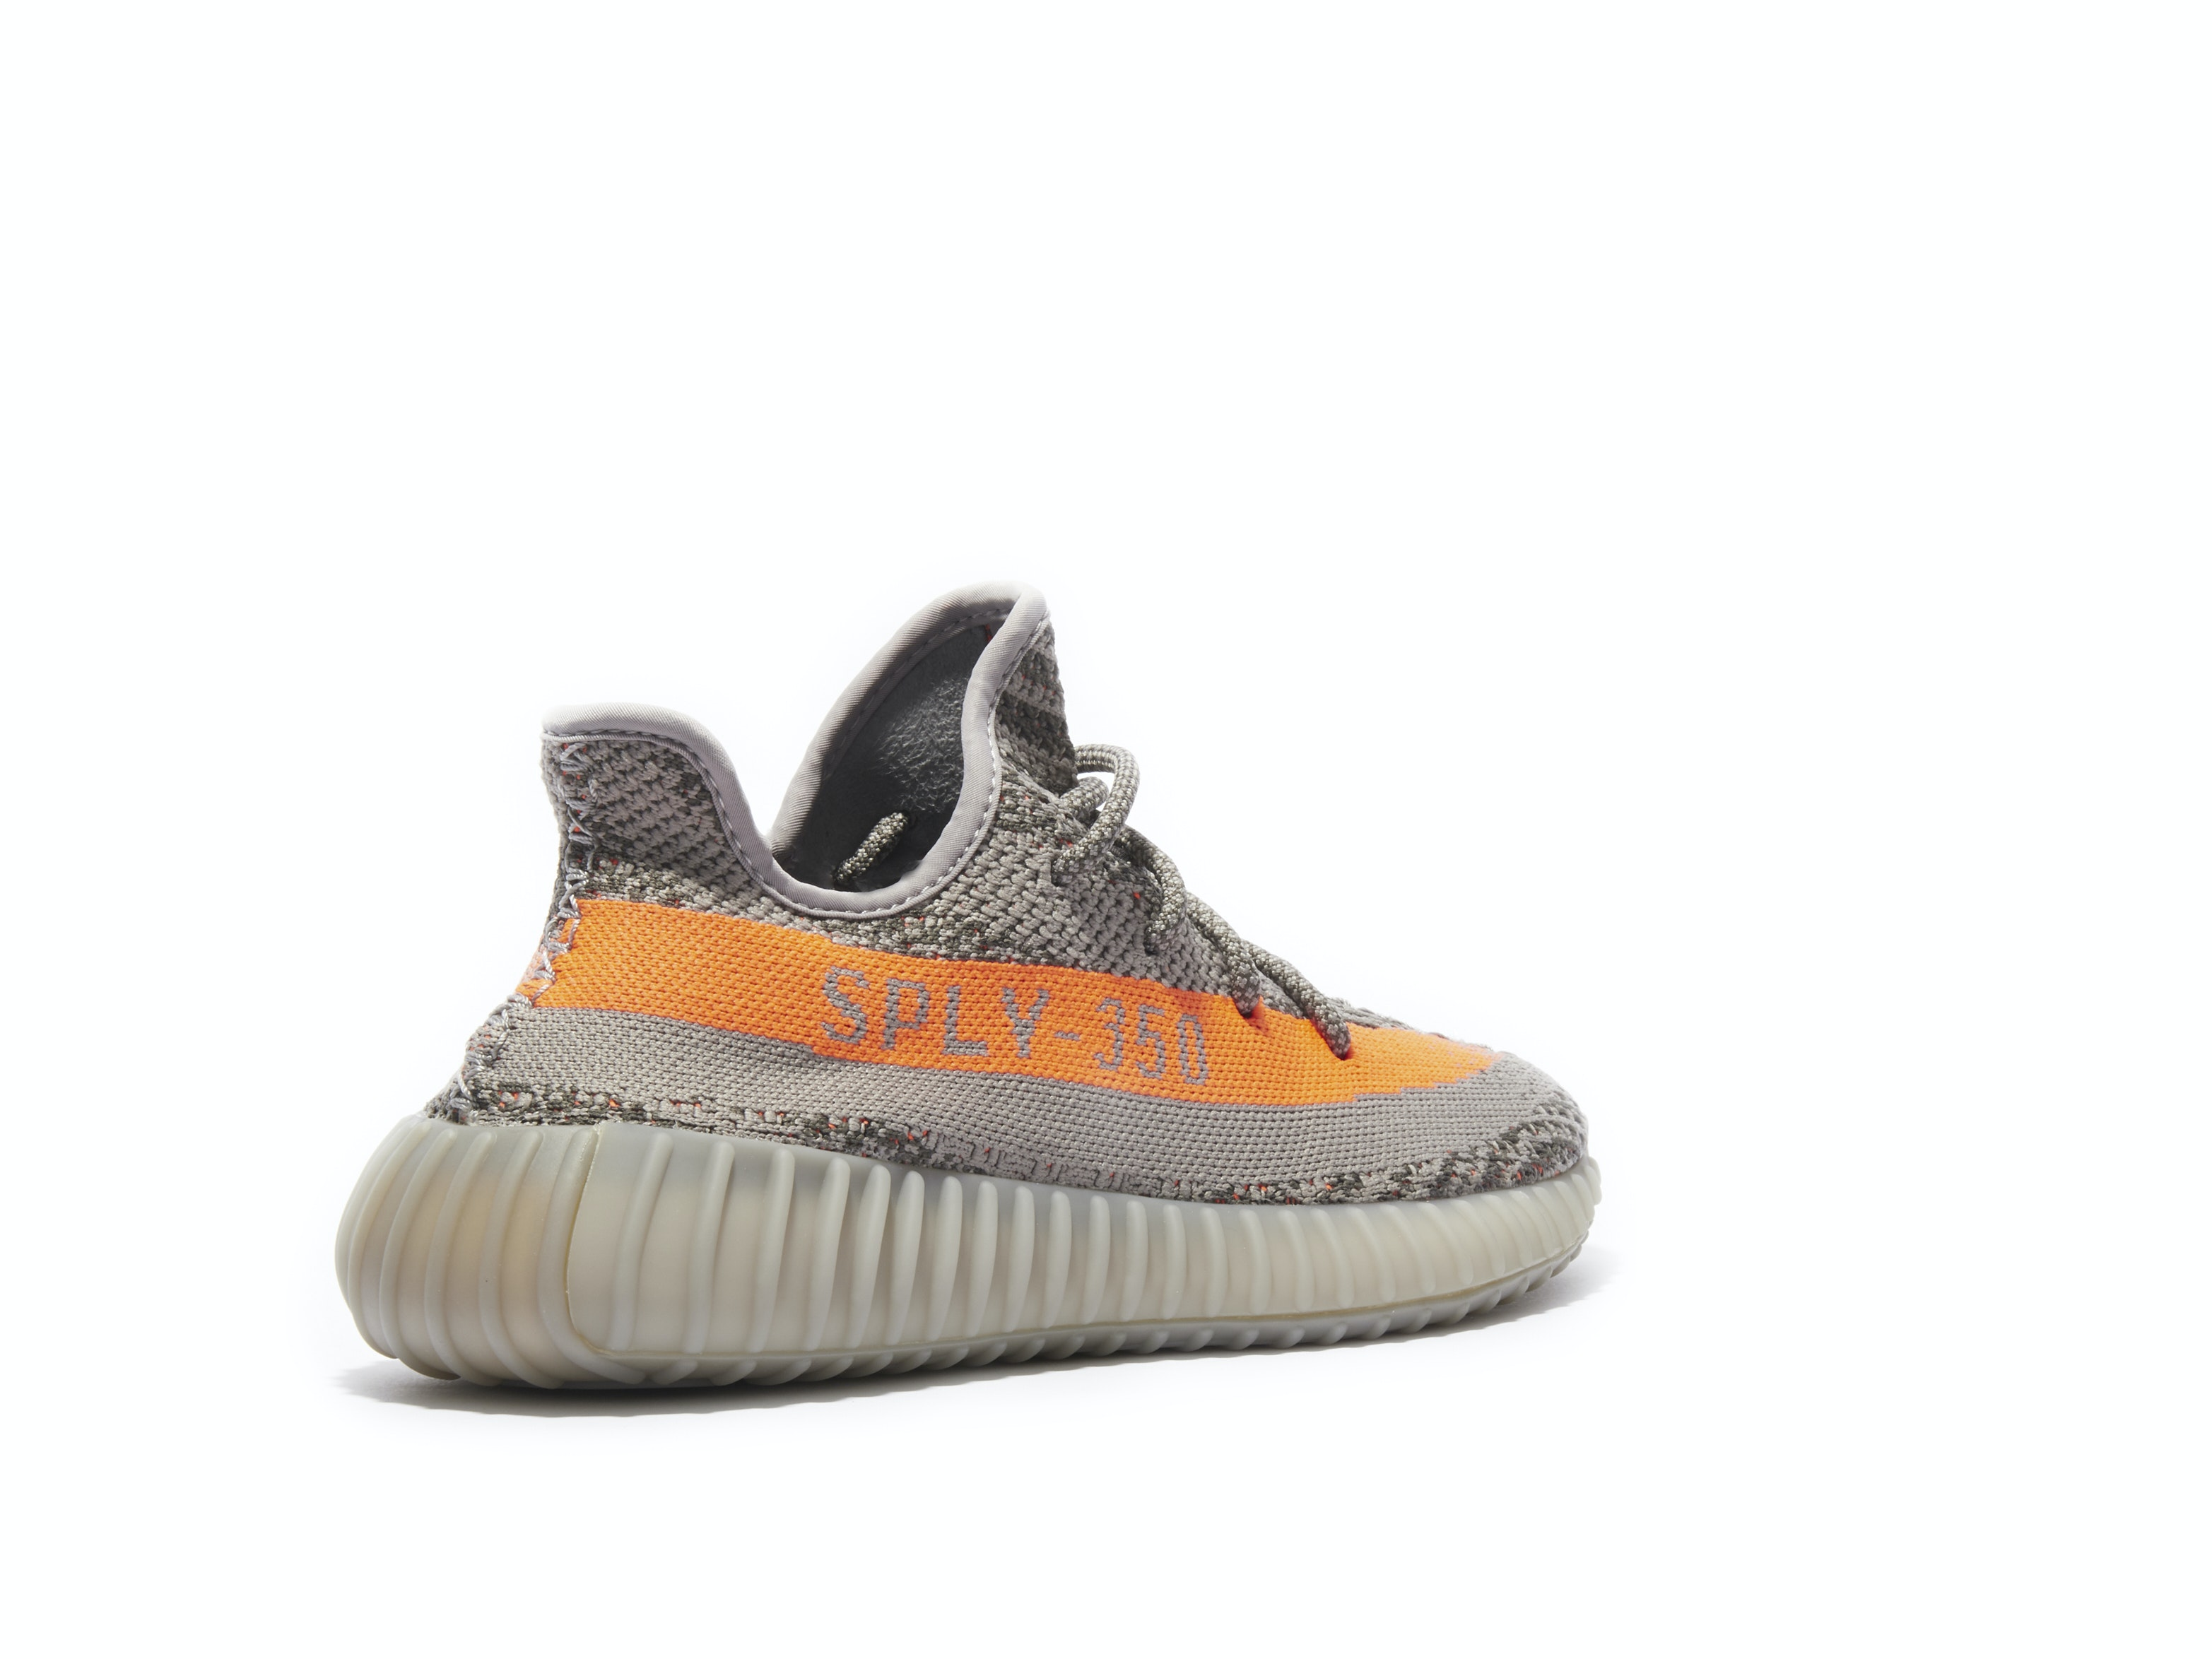 42a1a0e34f7 Yeezy Boost 350 V2 Beluga. 100% AuthenticAvg Delivery Time  1-2 days. Adidas    BB1826